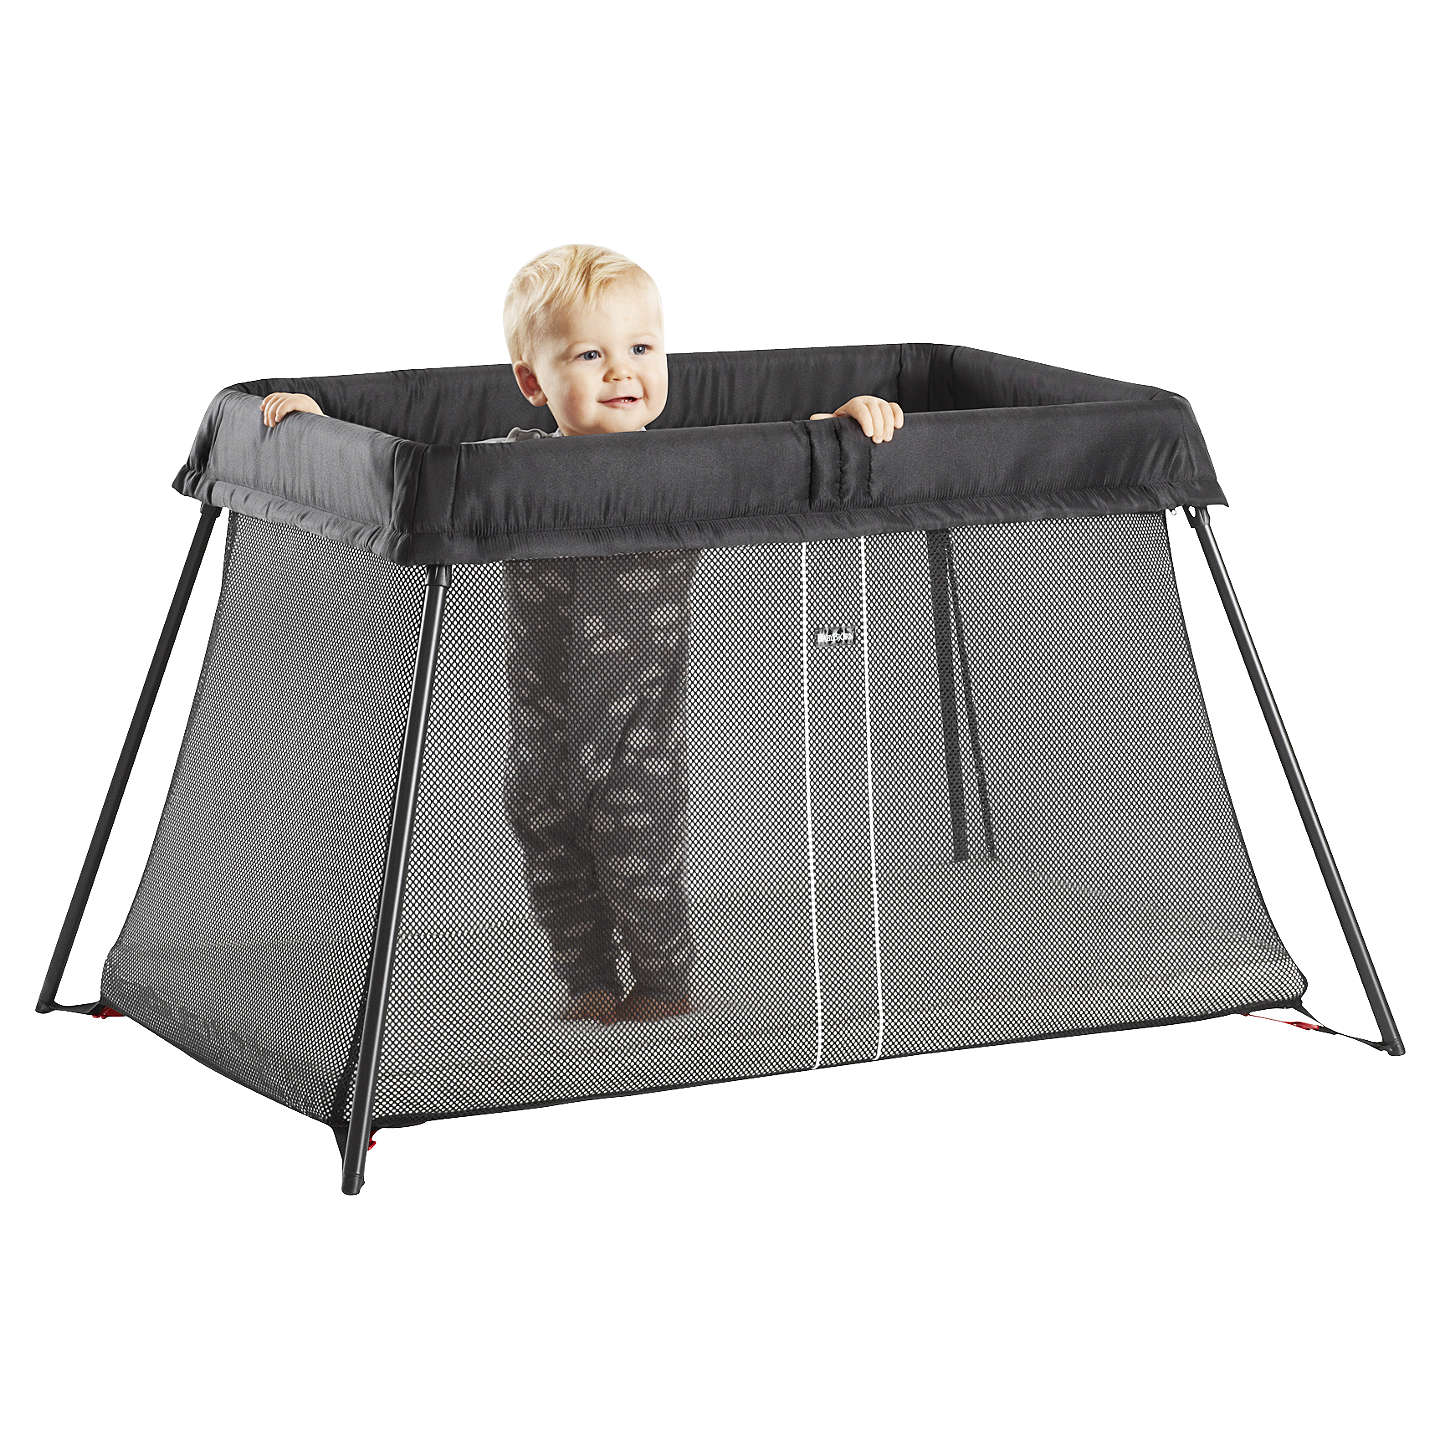 BuyBabyBjörn Travel Cot Light, Black Online at johnlewis.com